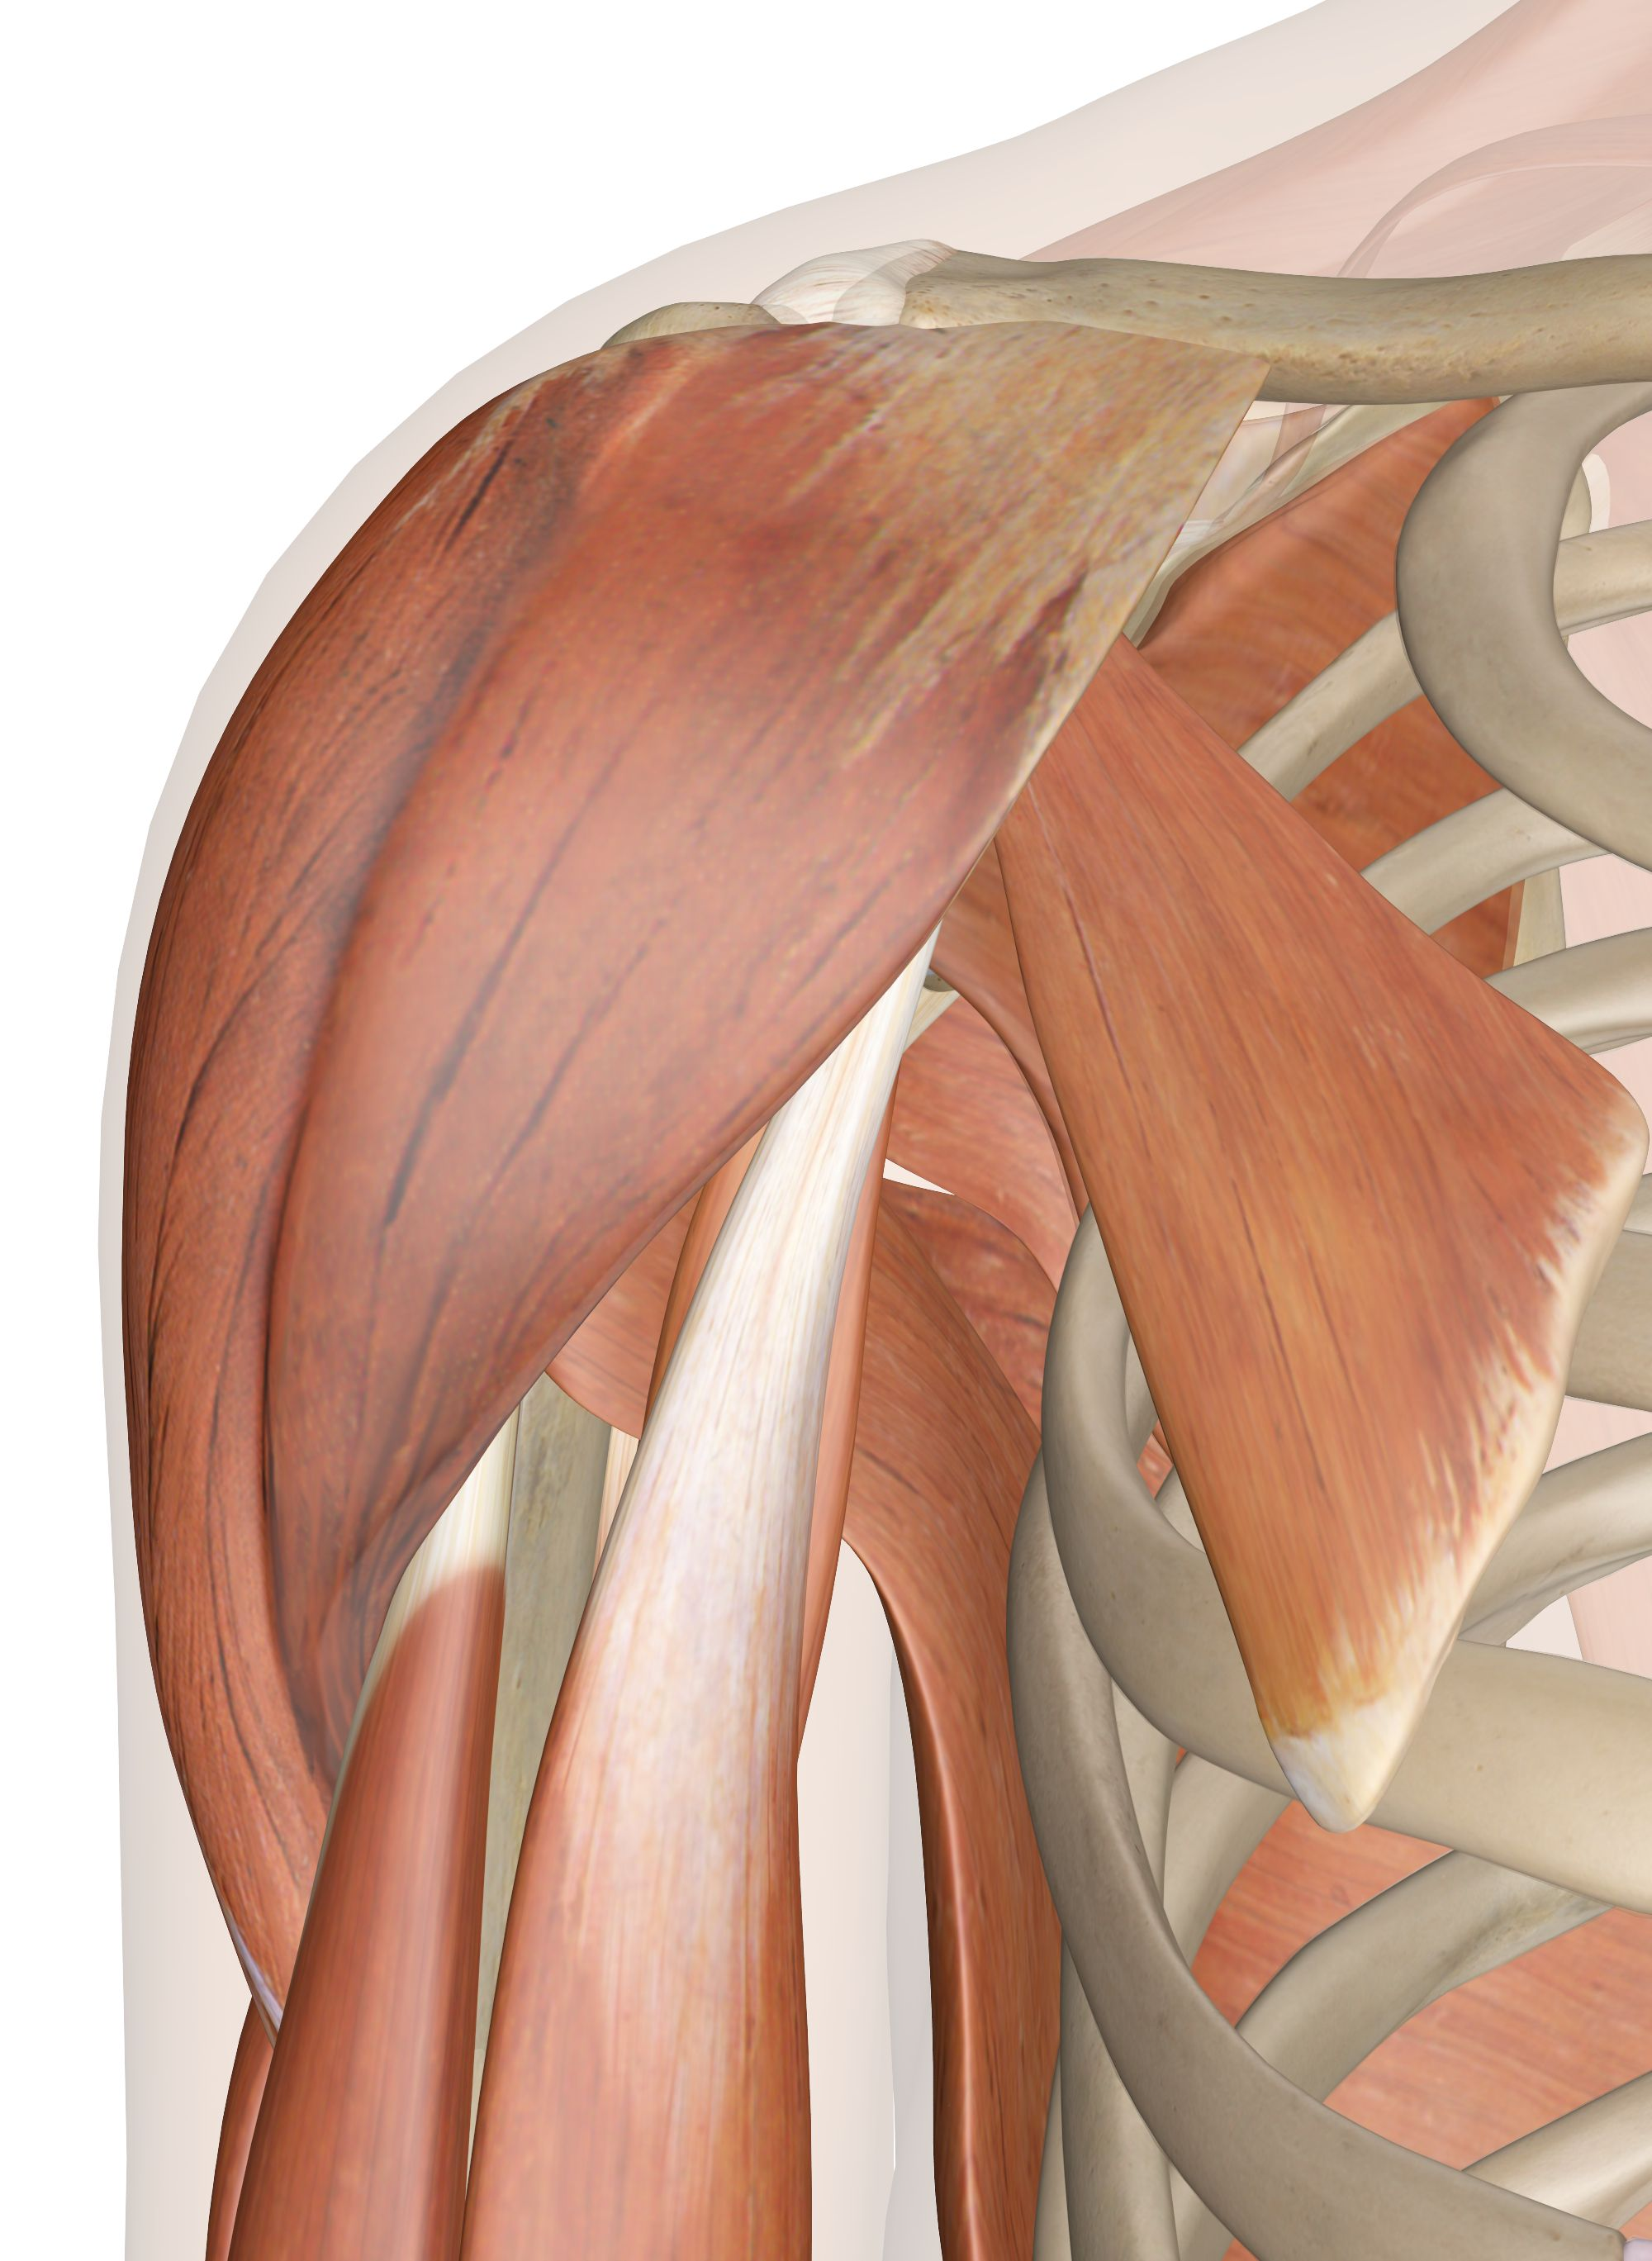 Shoulder Muscles Anatomy Diagram With Images